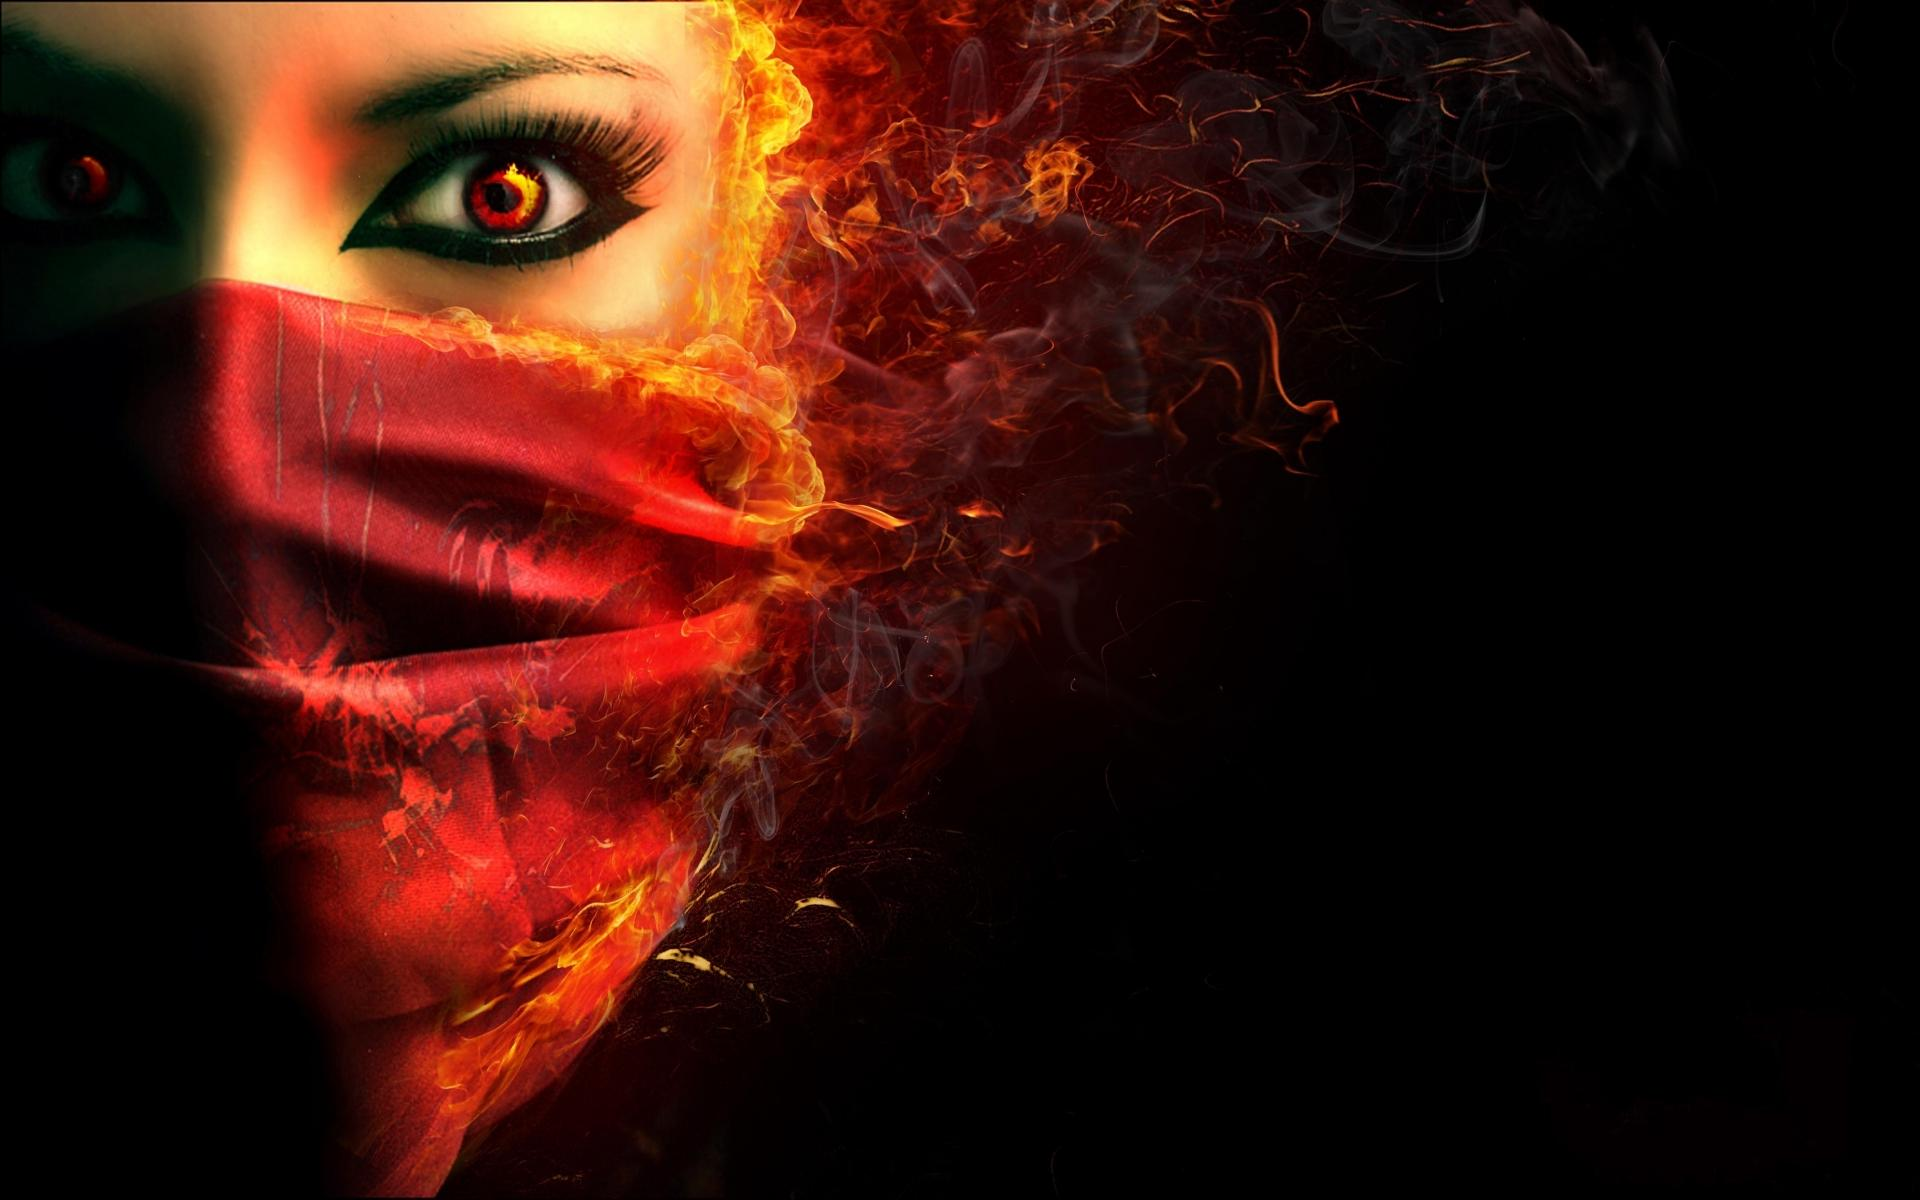 bandit women on fire wallpapers hd desktop and mobile